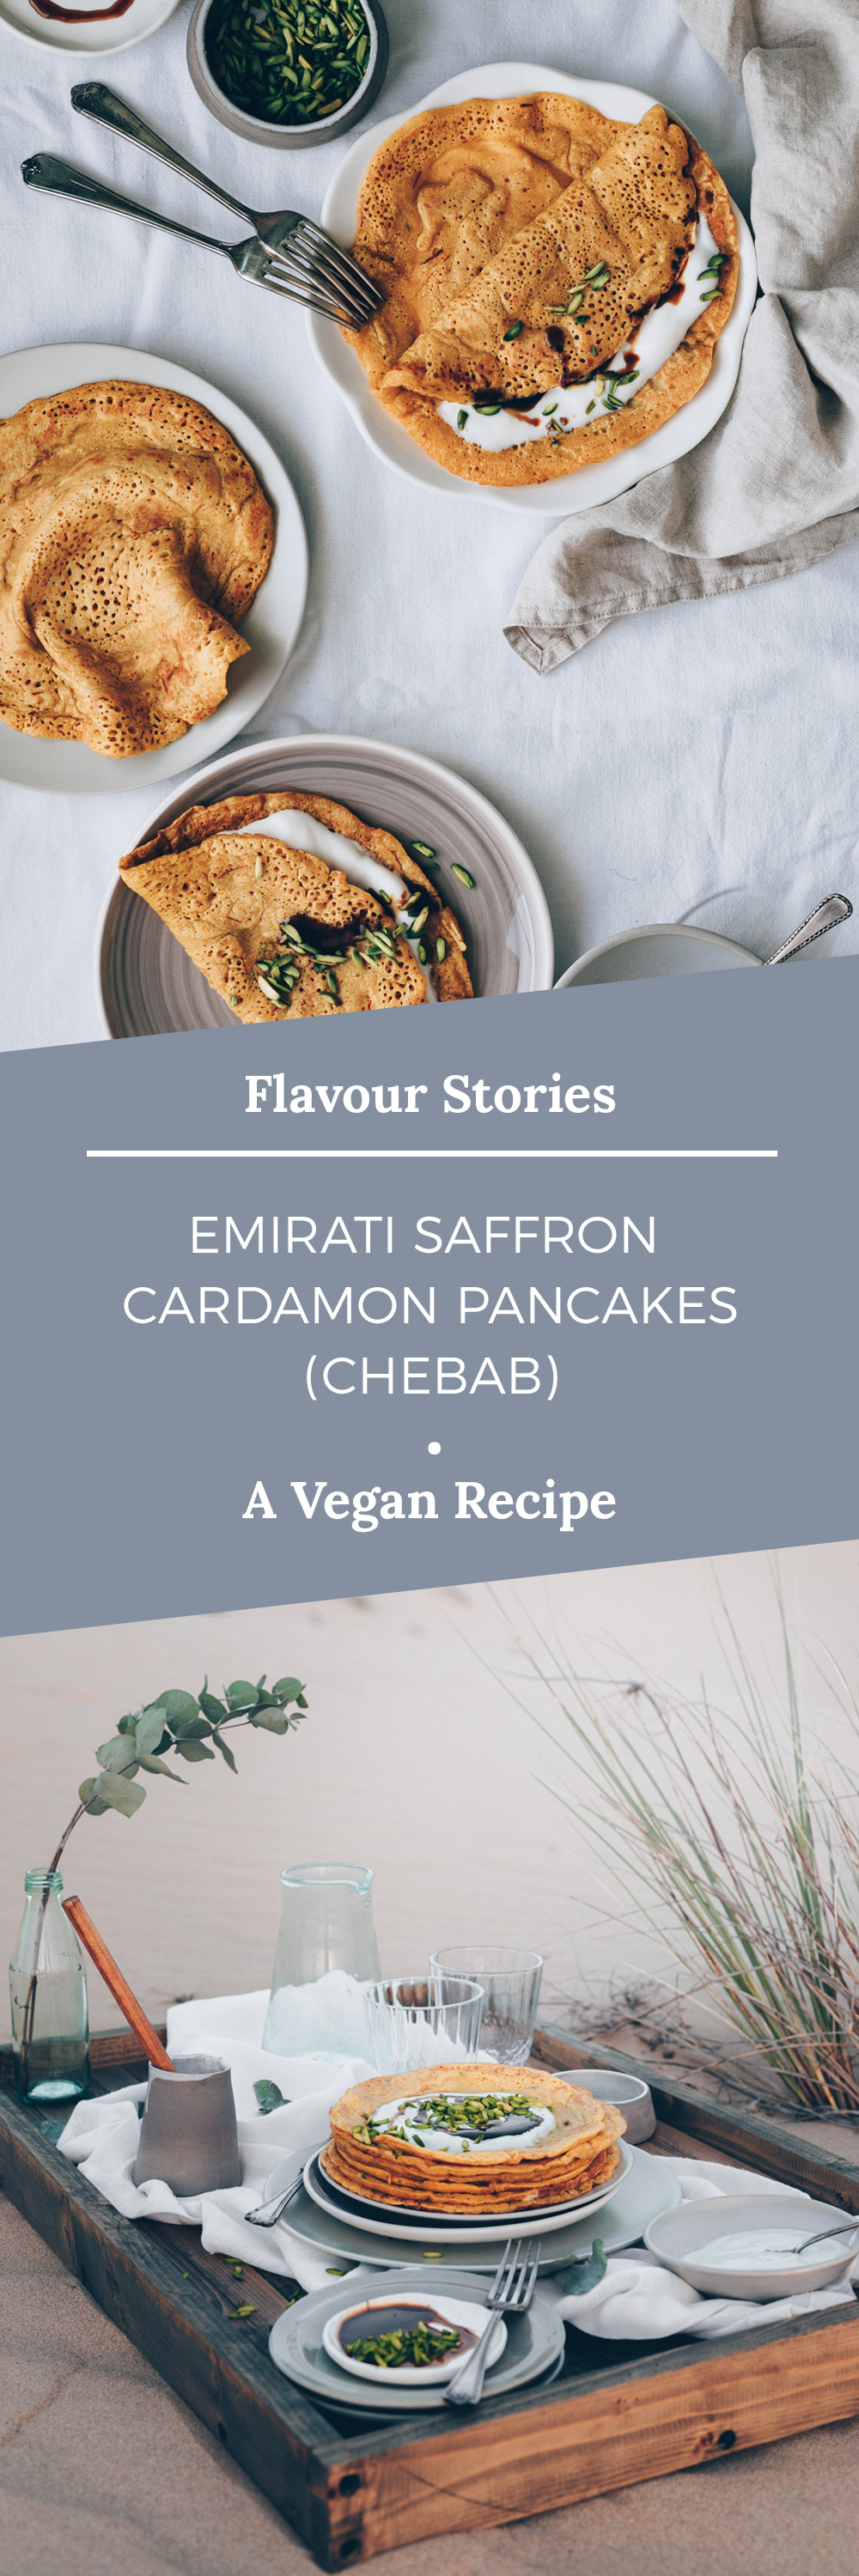 Emirati Saffron Cardamon Pancakes (Chebab) - A Vegan Recipe by Kati of black.white.vivid. // food photography, food styling, desert food, Ramadan recipe, Emirate cuisine, UAE, desert picnic